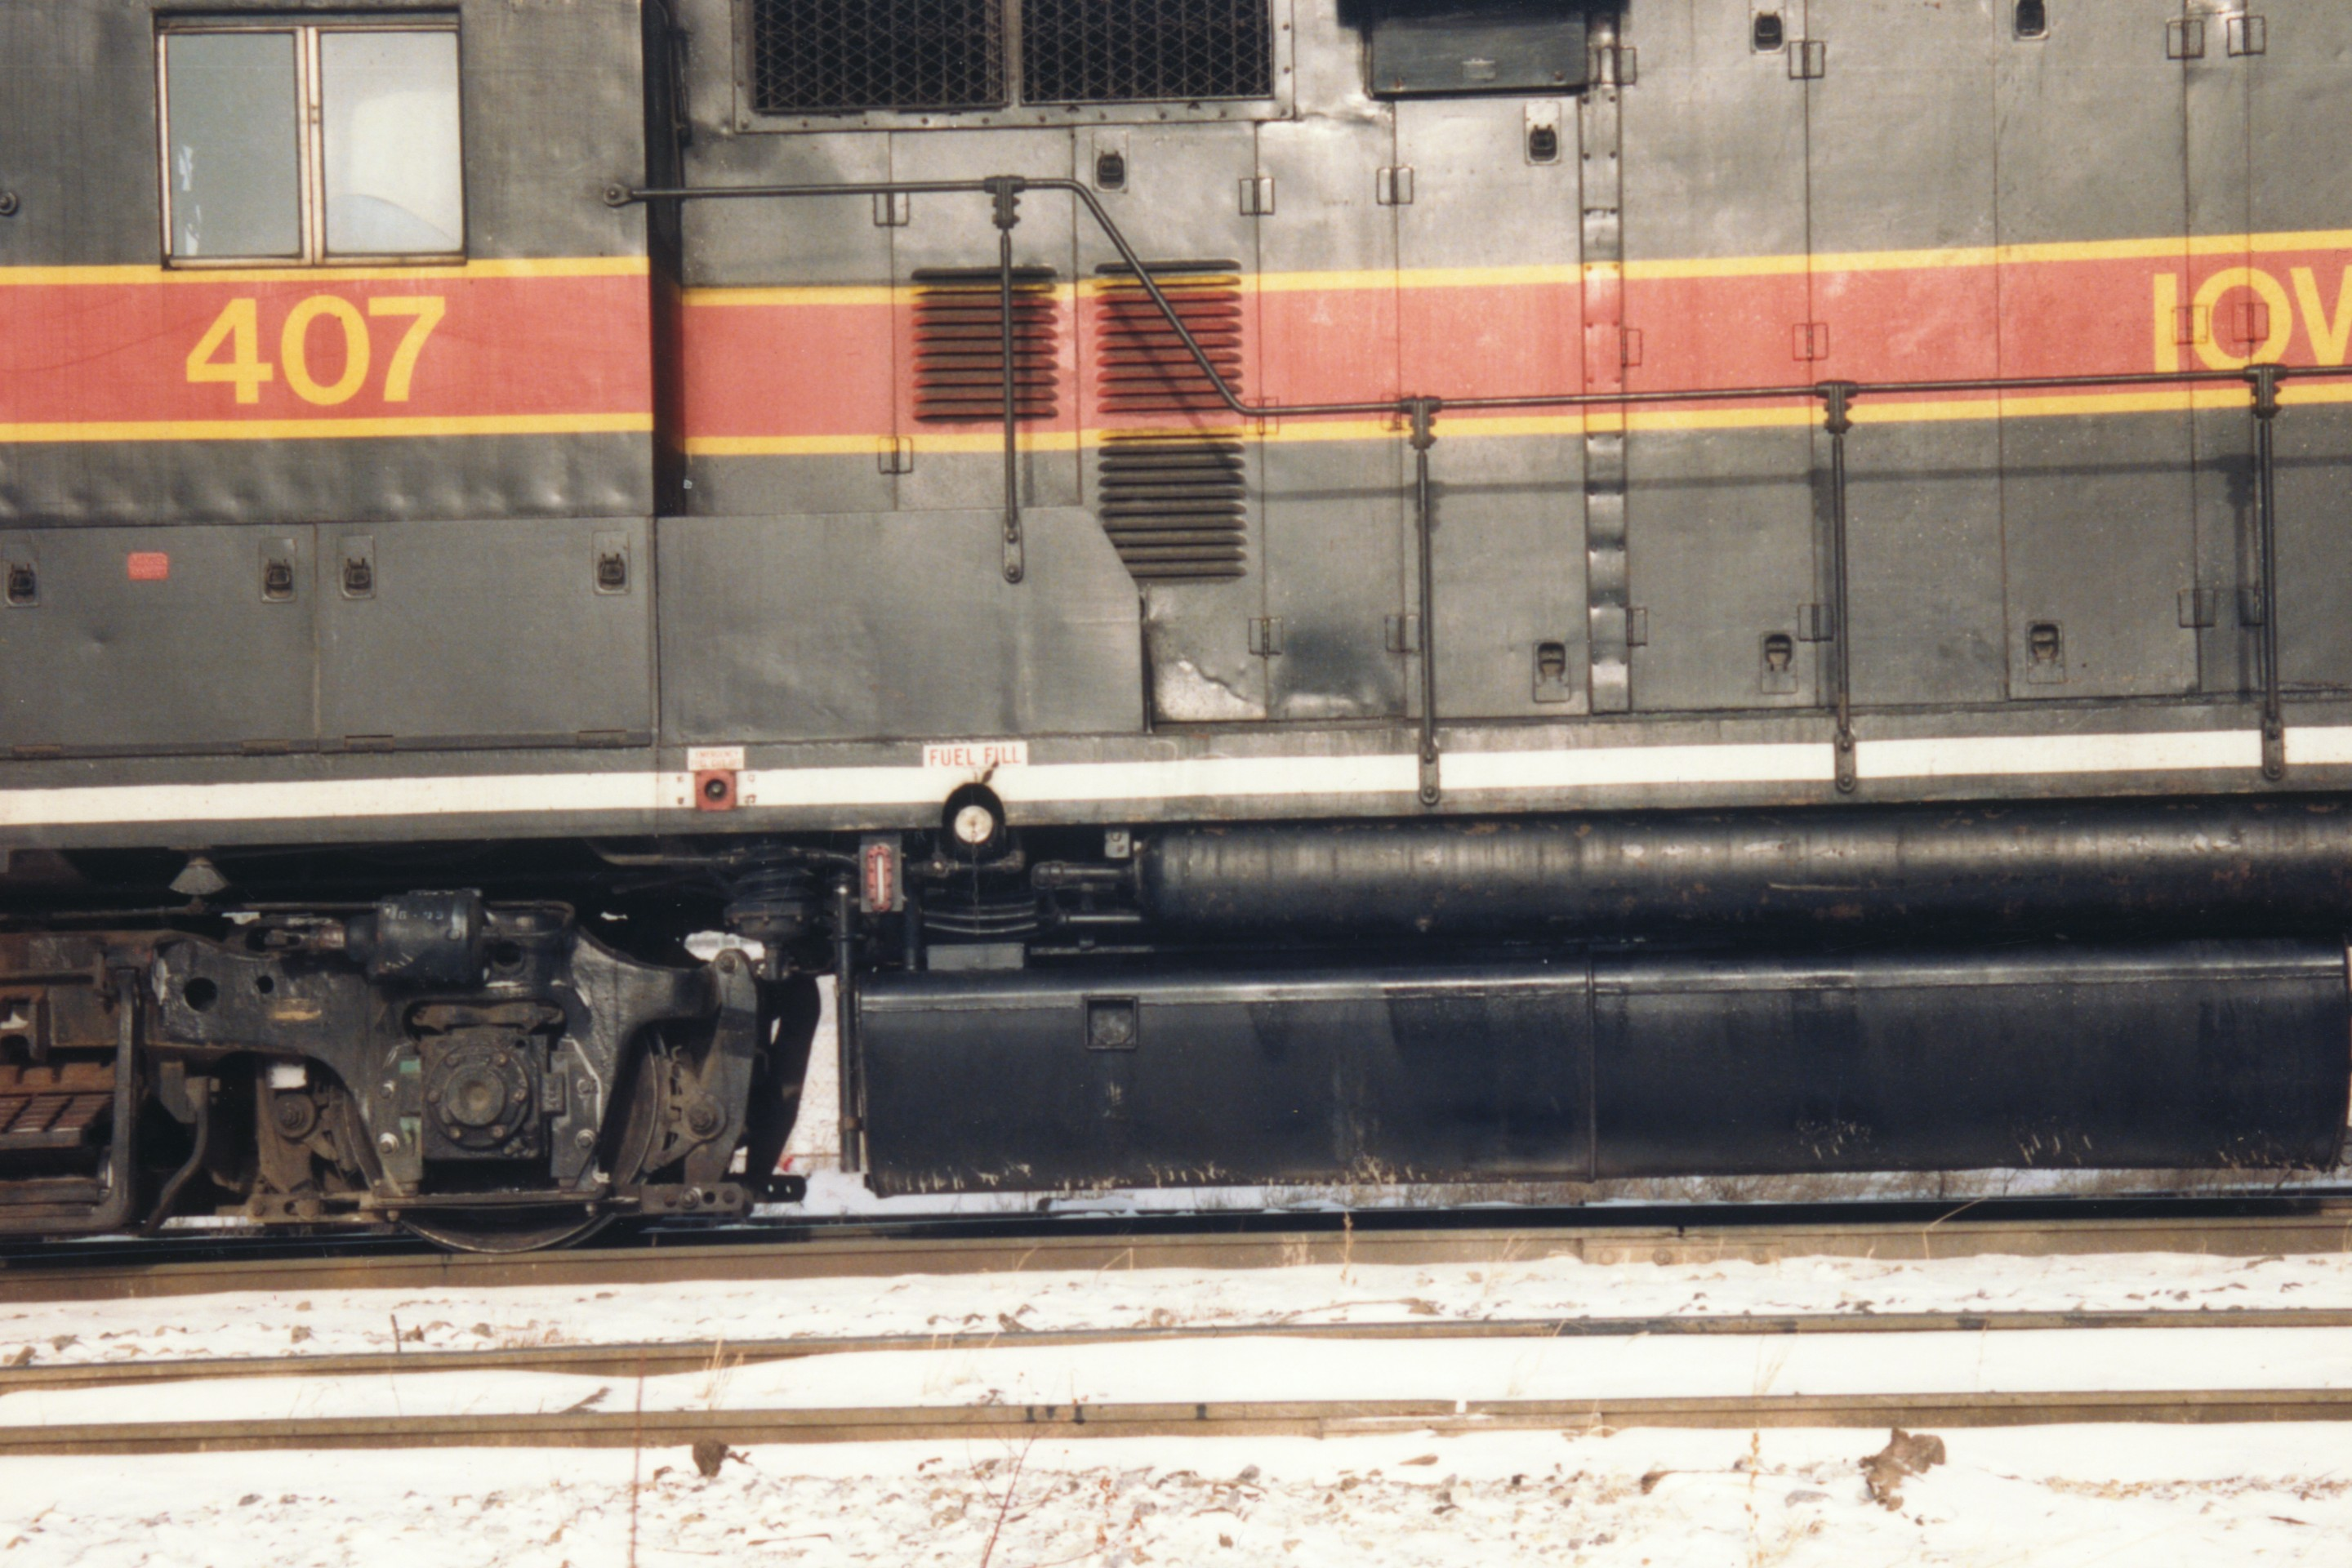 IAIS 407 at Altoona, IA on 29-Dec-1993